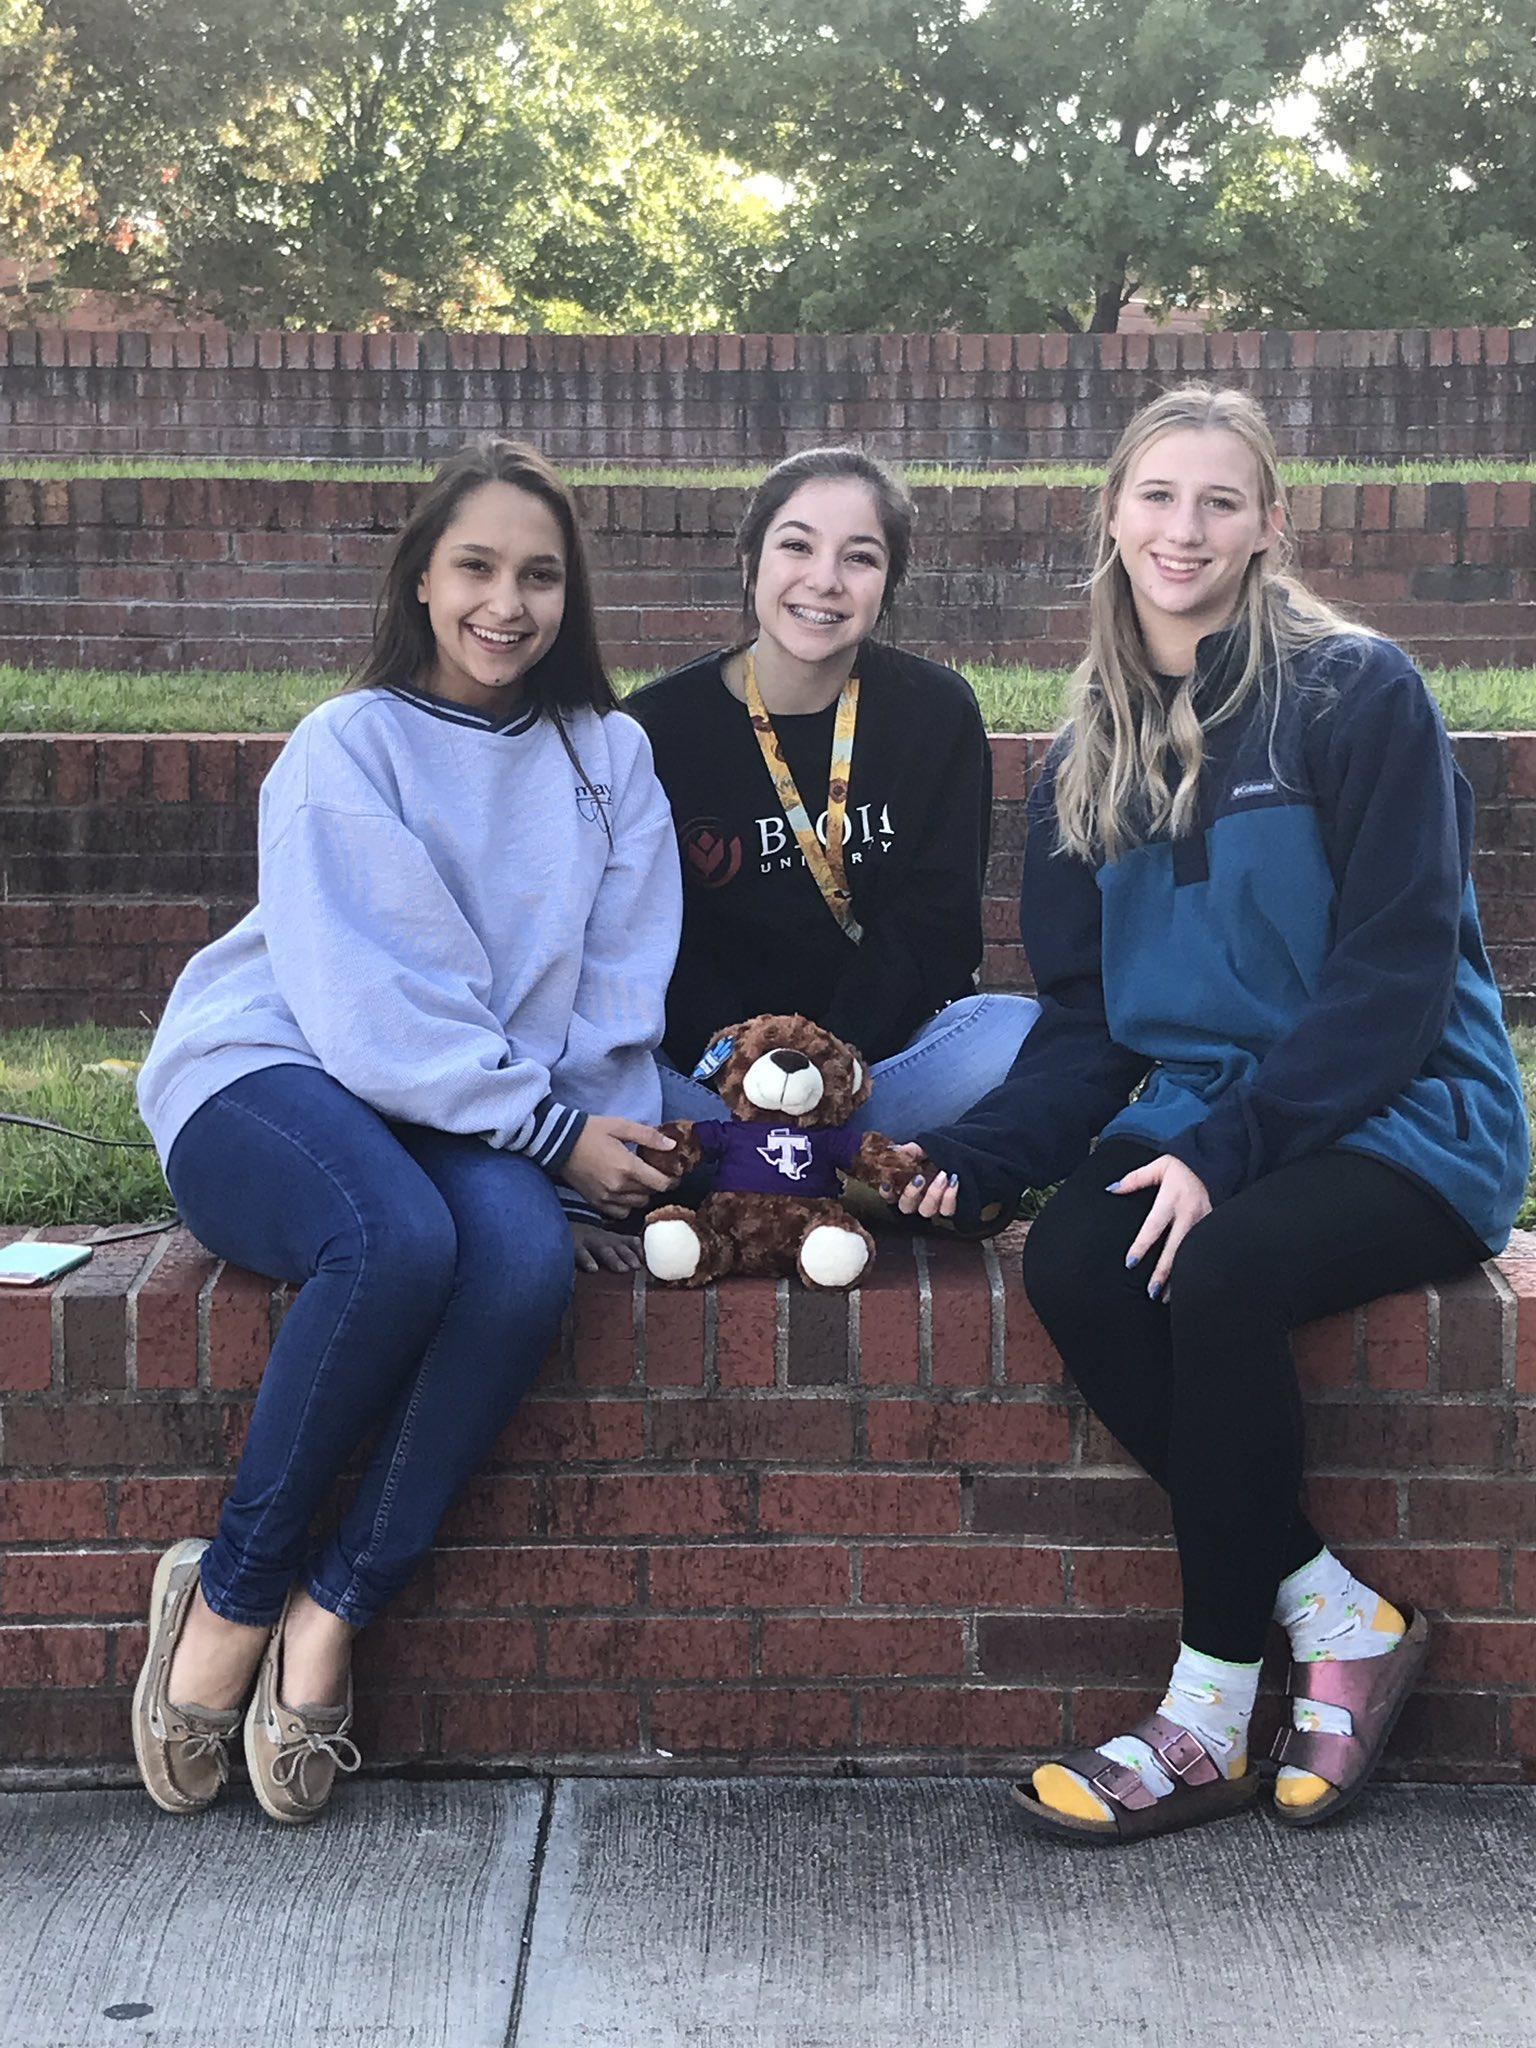 three students with teddy bear sitting outside on a brick wall